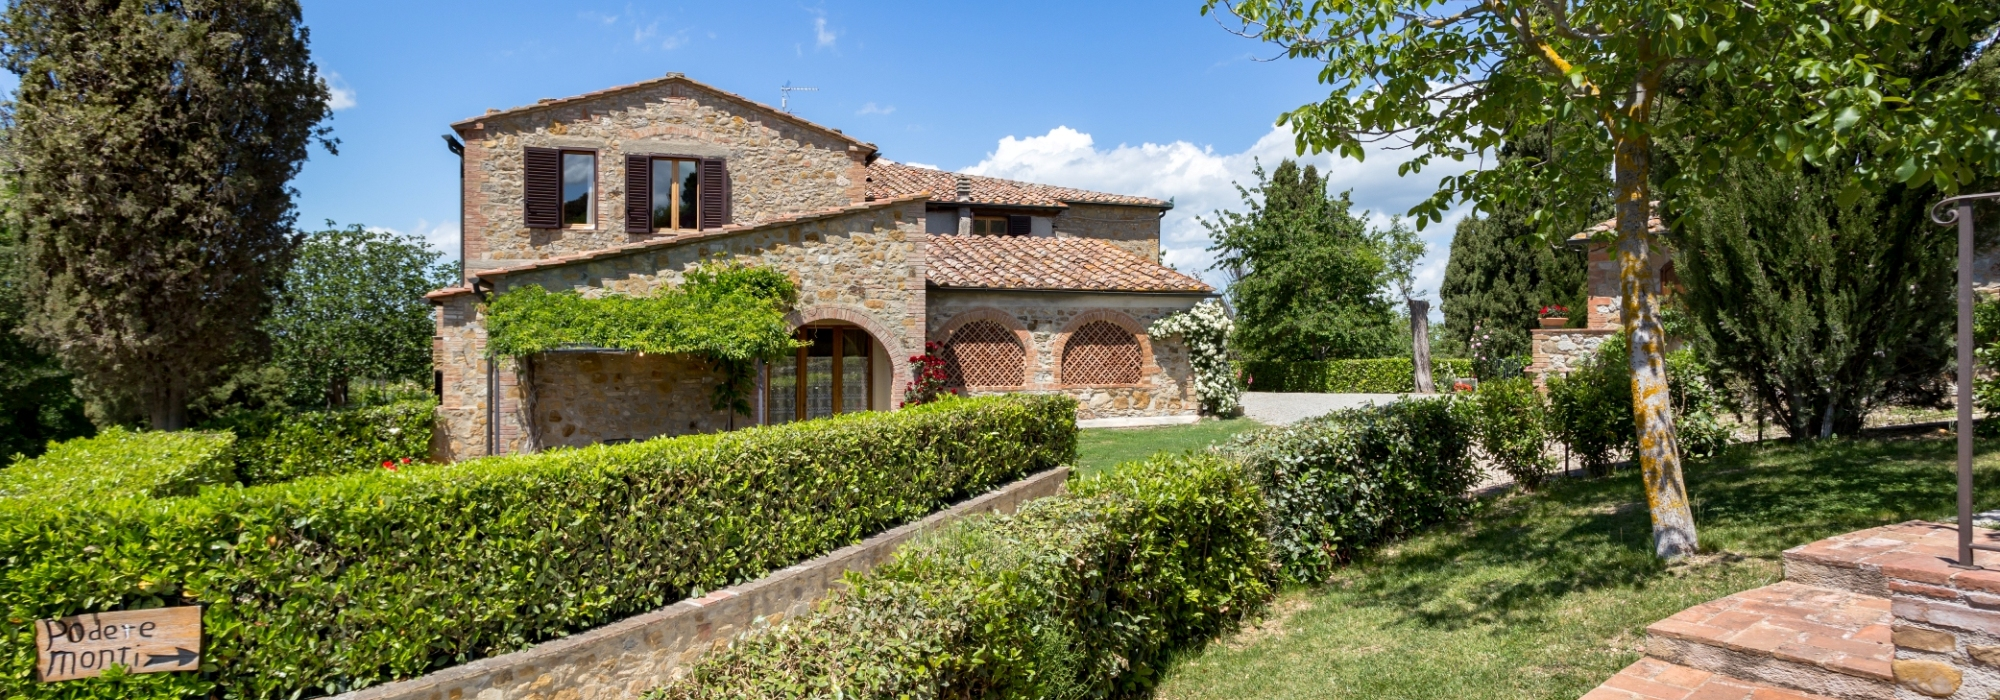 Farm Holiday house in Tuscany Podere Monti Casole d\'Elsa Siena